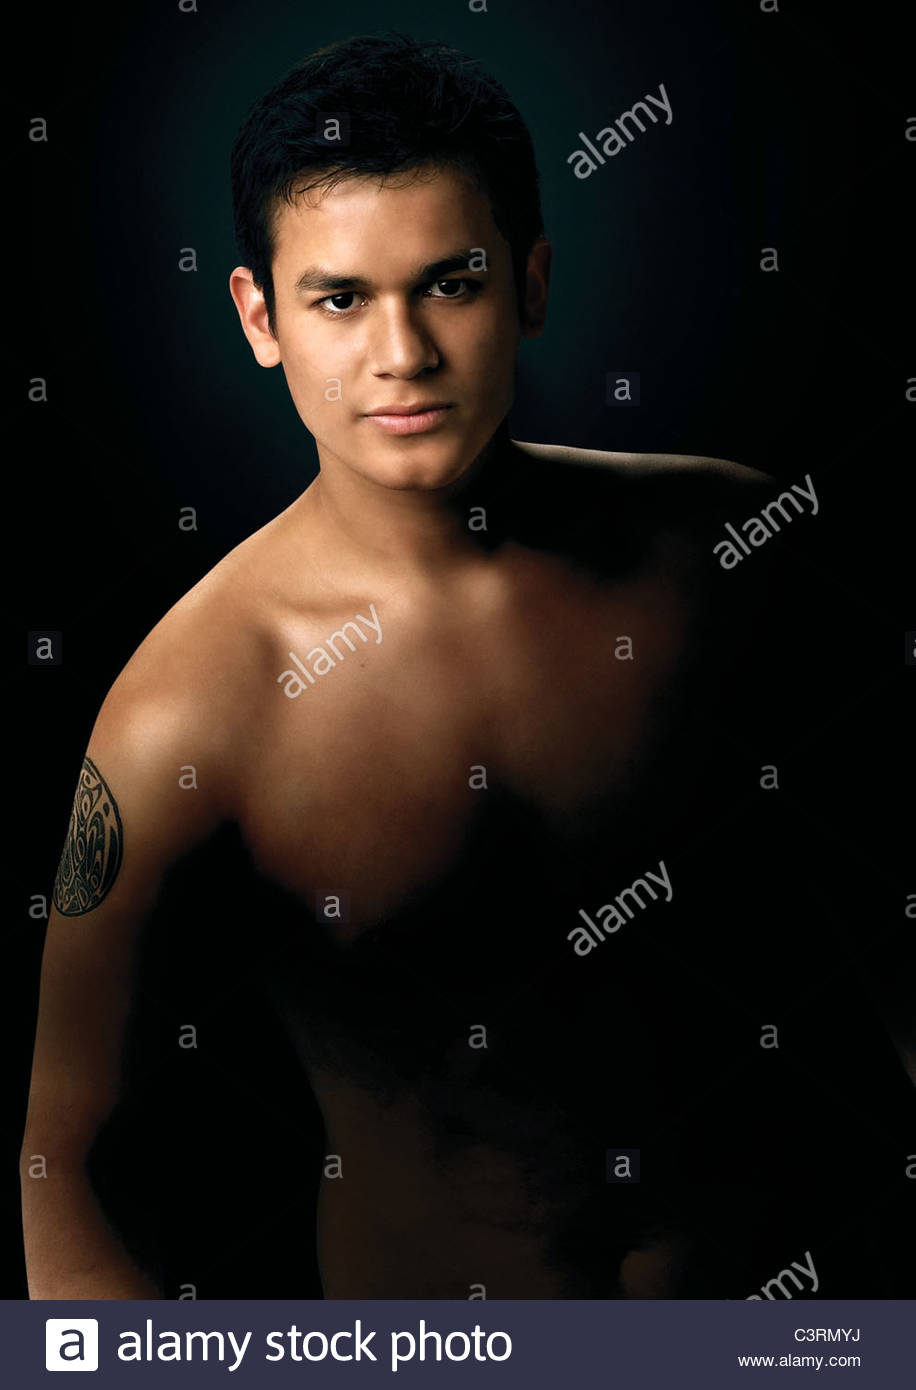 BRONSON PELLETIER THE TWILIGHT SAGA: NEW MOON (2009) - Stock Image